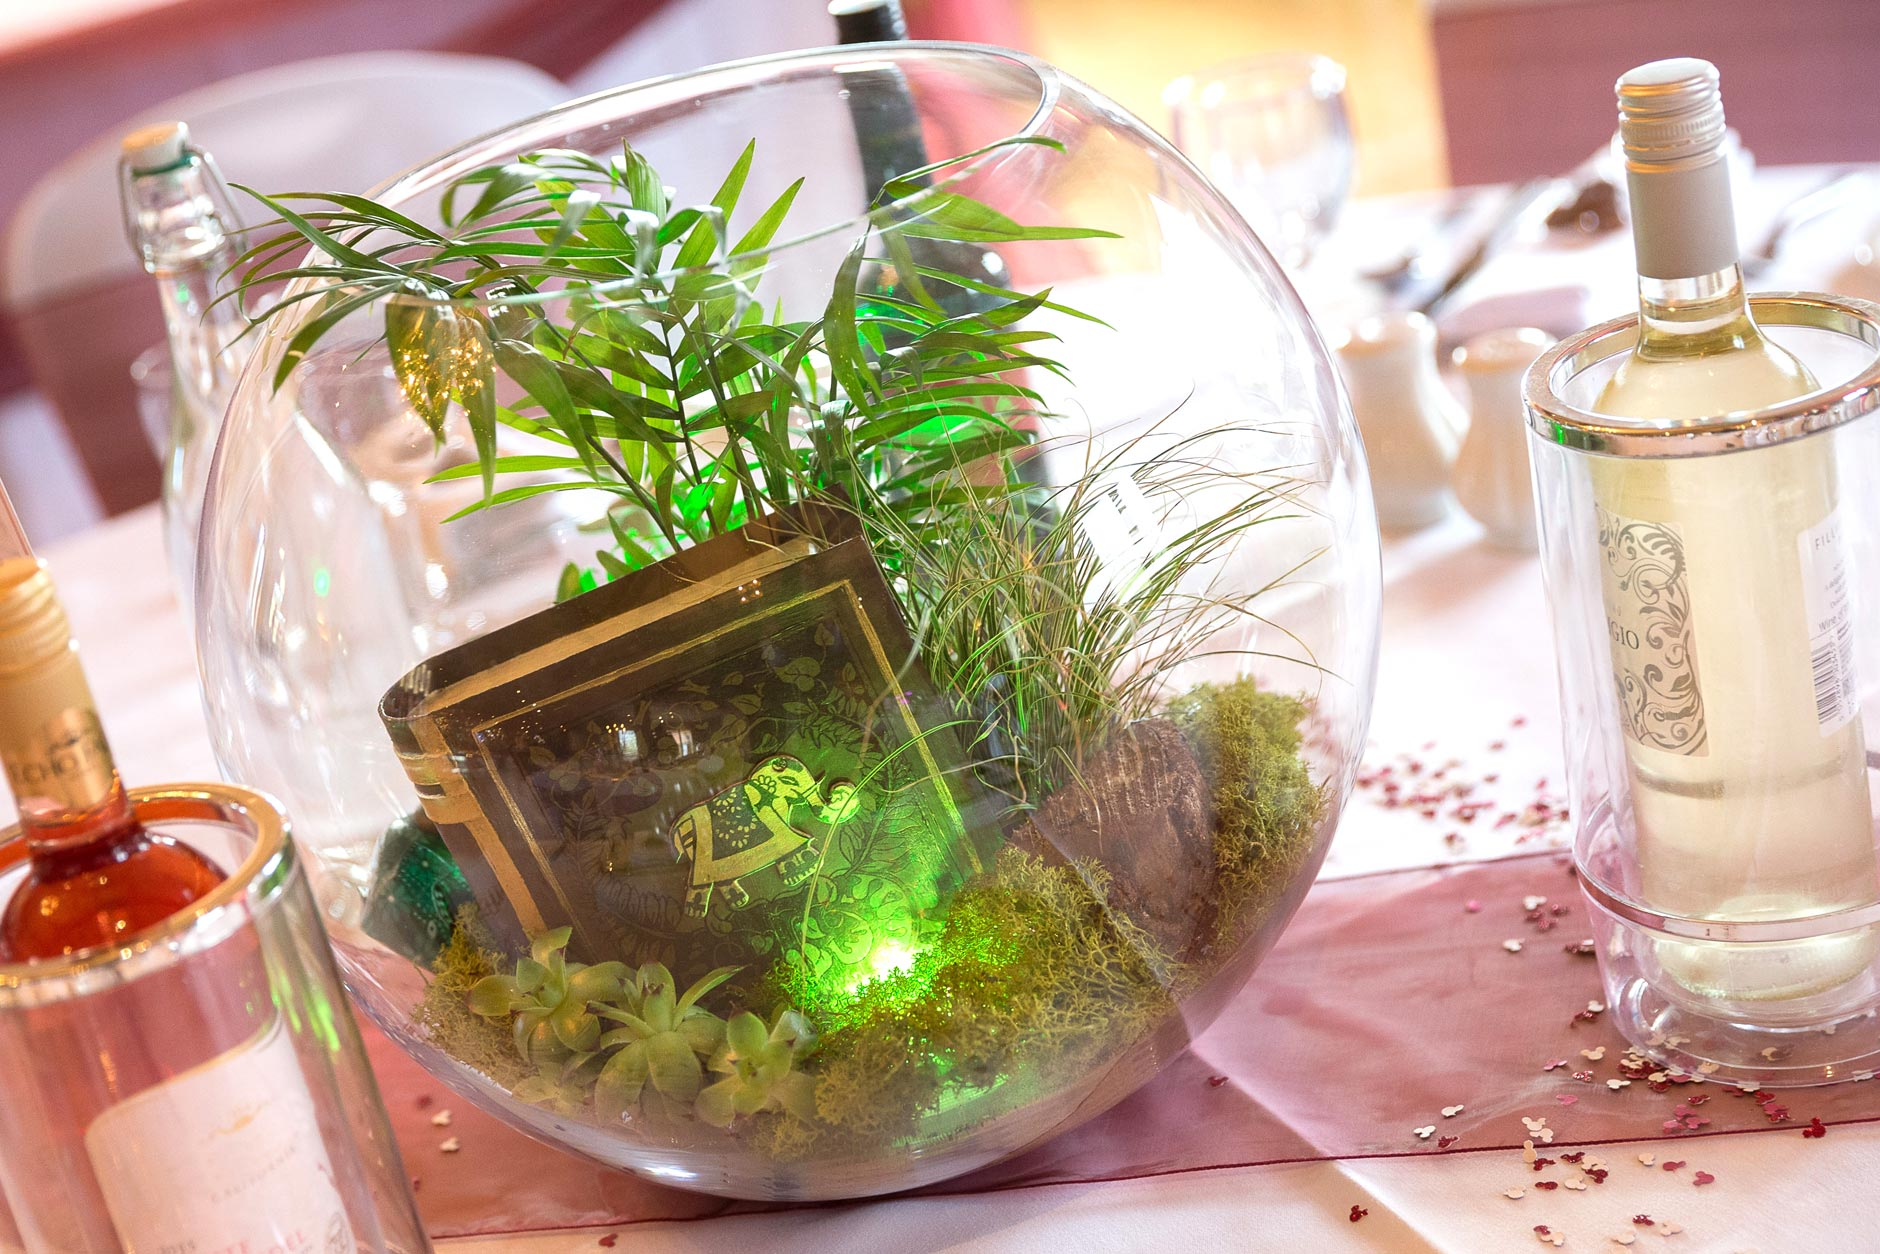 Jungle of india disney s the jungle book inspired table decoration disney themed wedding designs - Deco table jungle ...